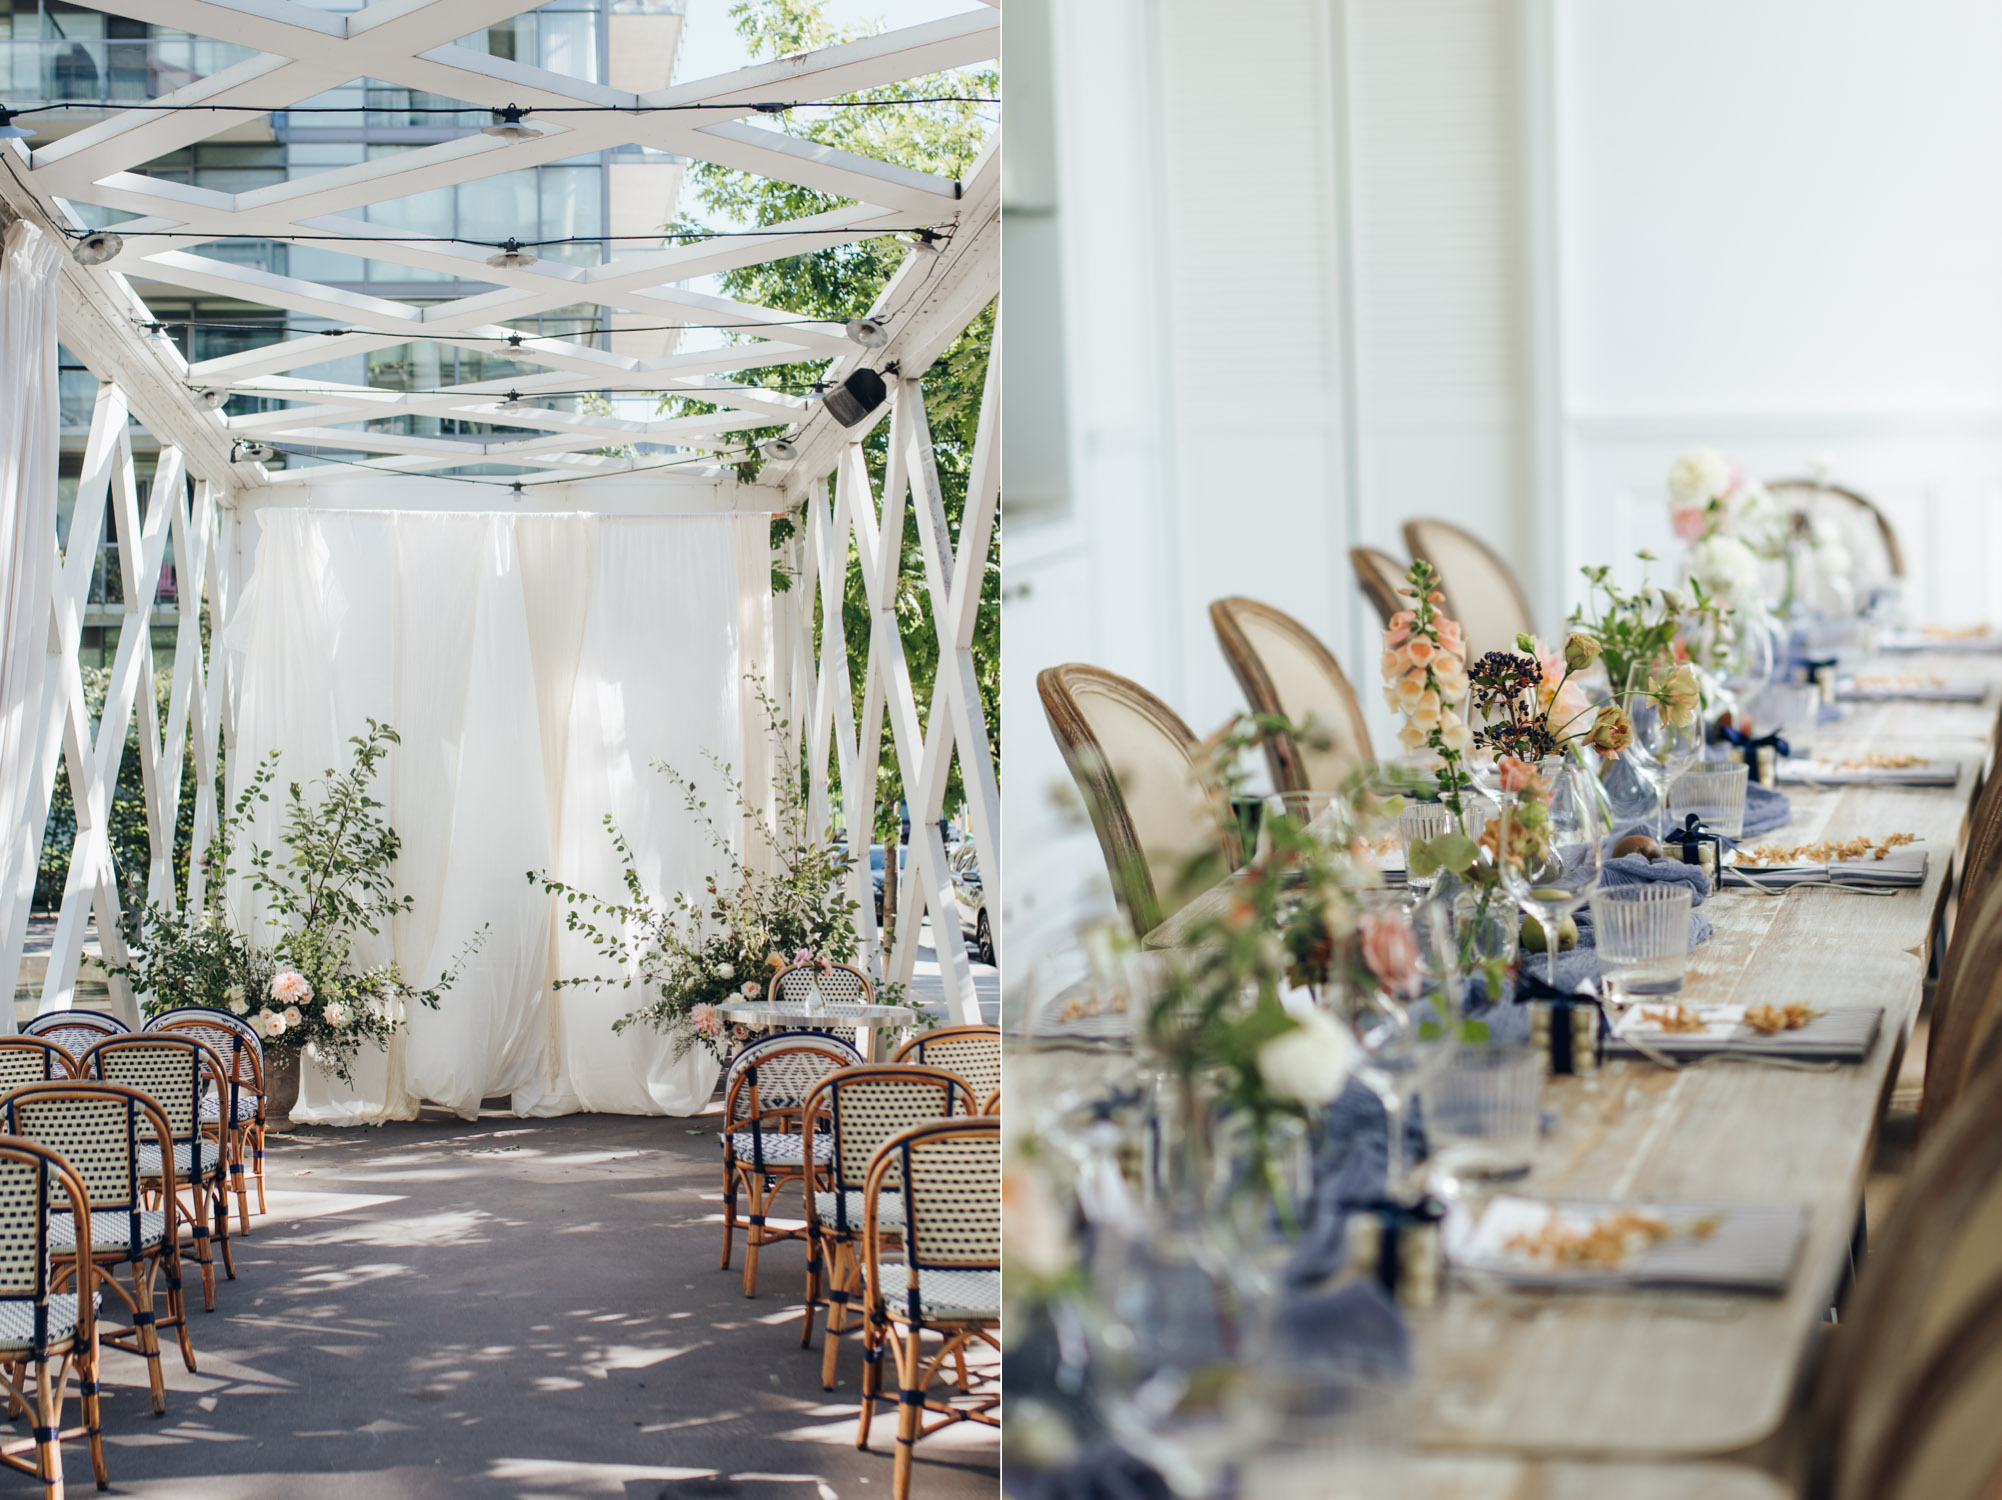 Thompson Hotel The Park Room Colette grand cafe Wedding Ceremony Details